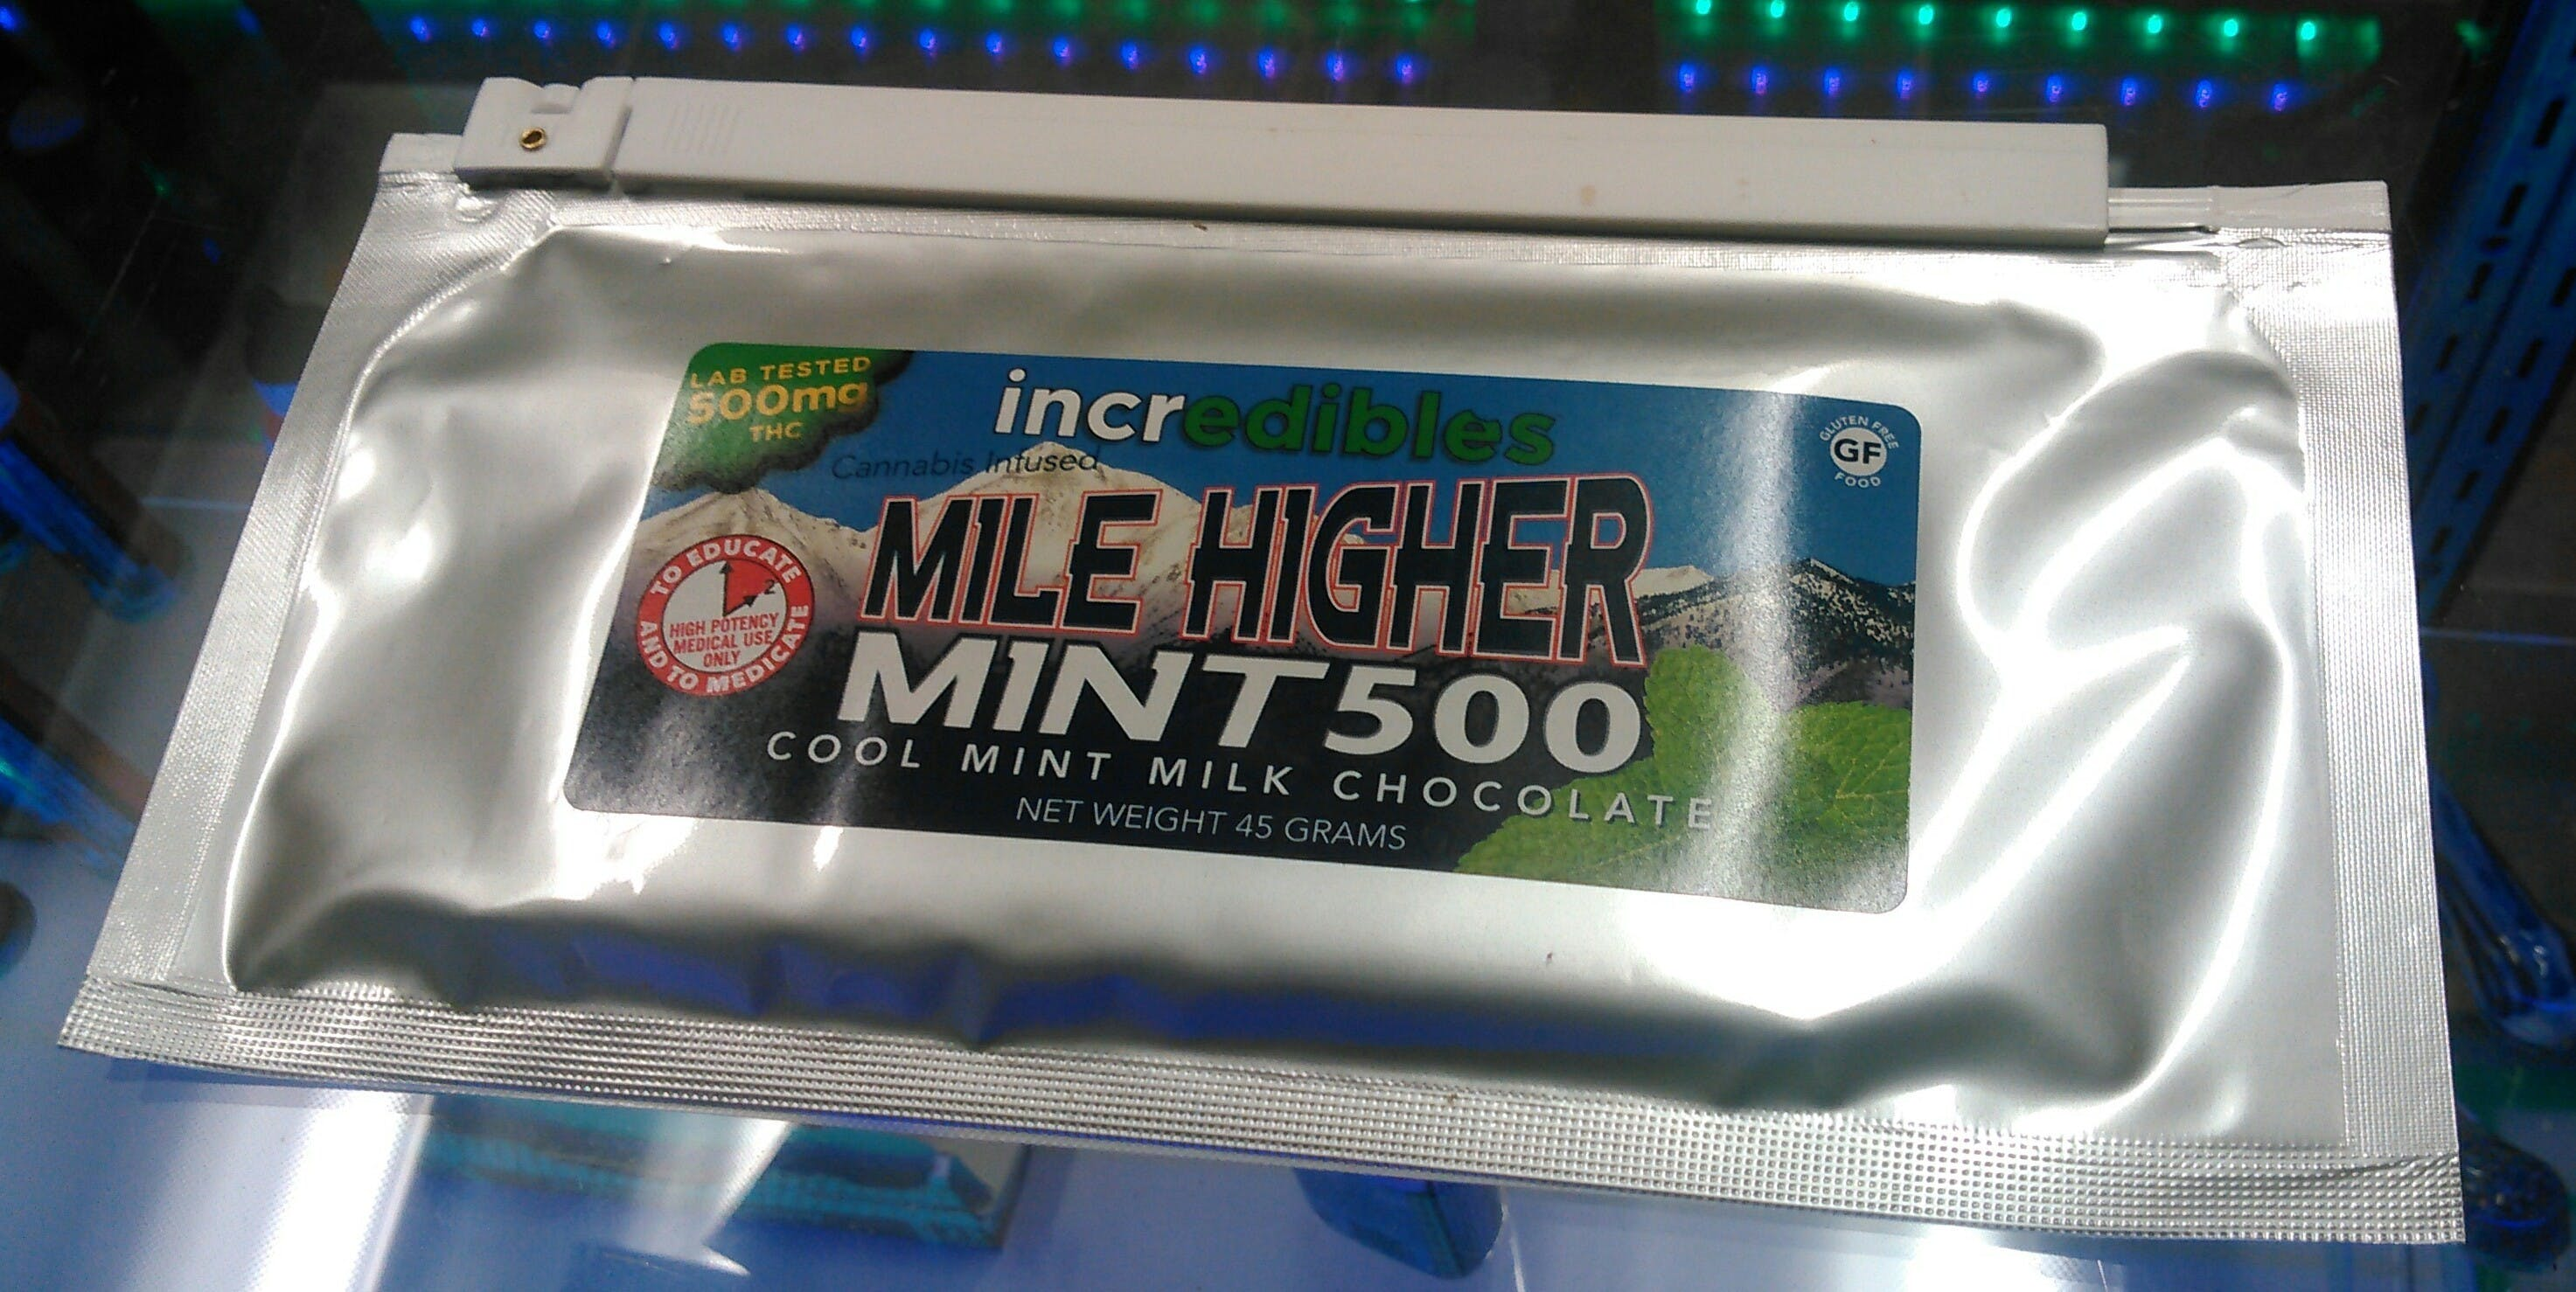 edible-incredibles-mile-higher-mint-bar-500mg-thc-chocolate-bar